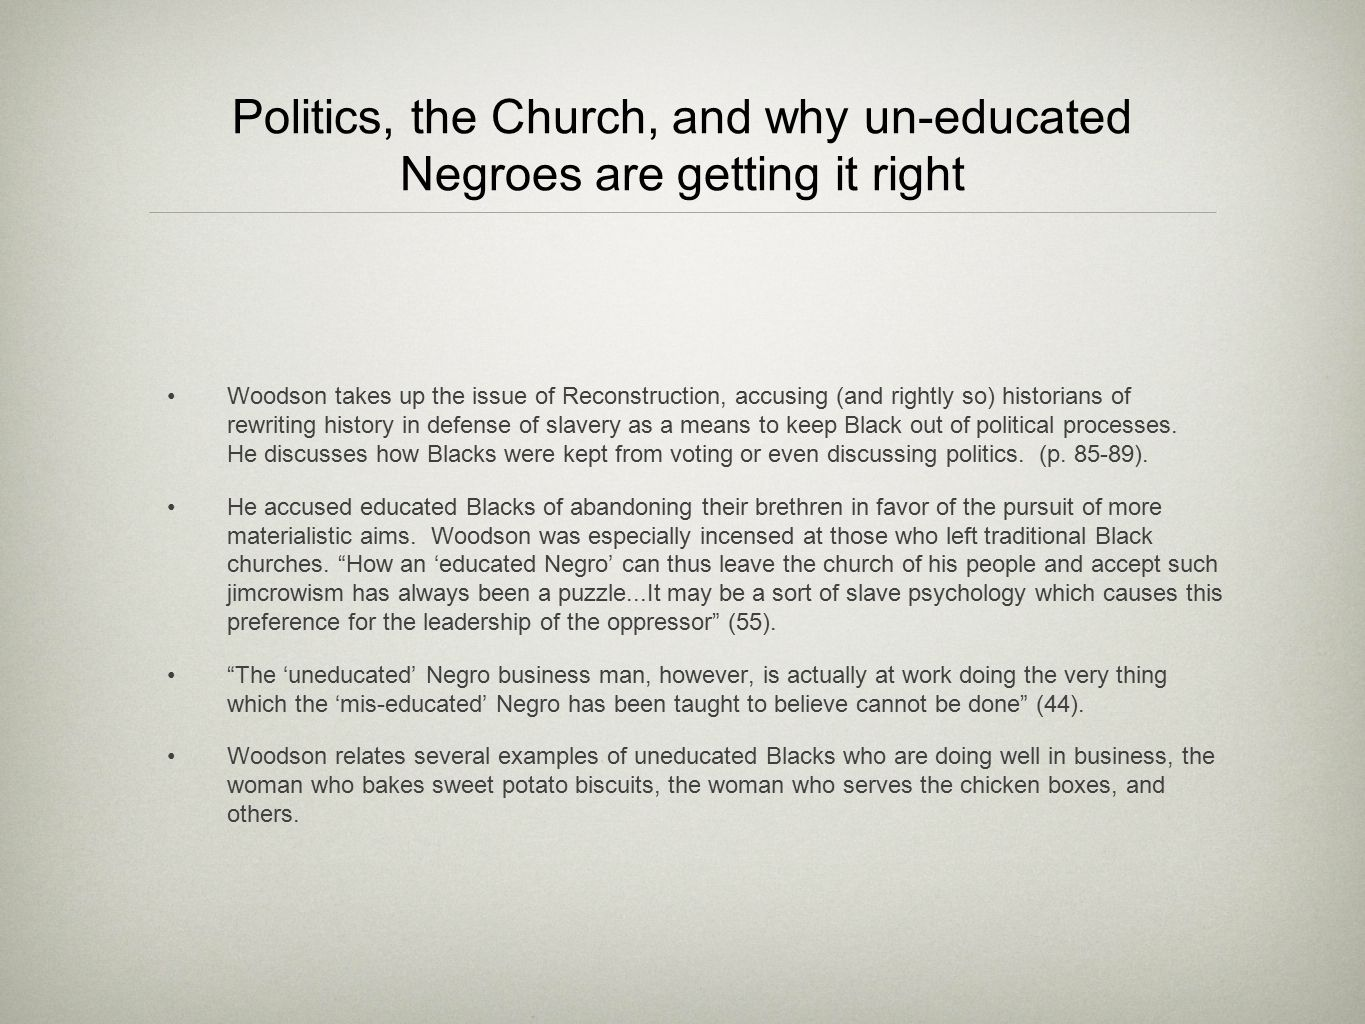 Politics, the Church, and why un-educated Negroes are getting it right